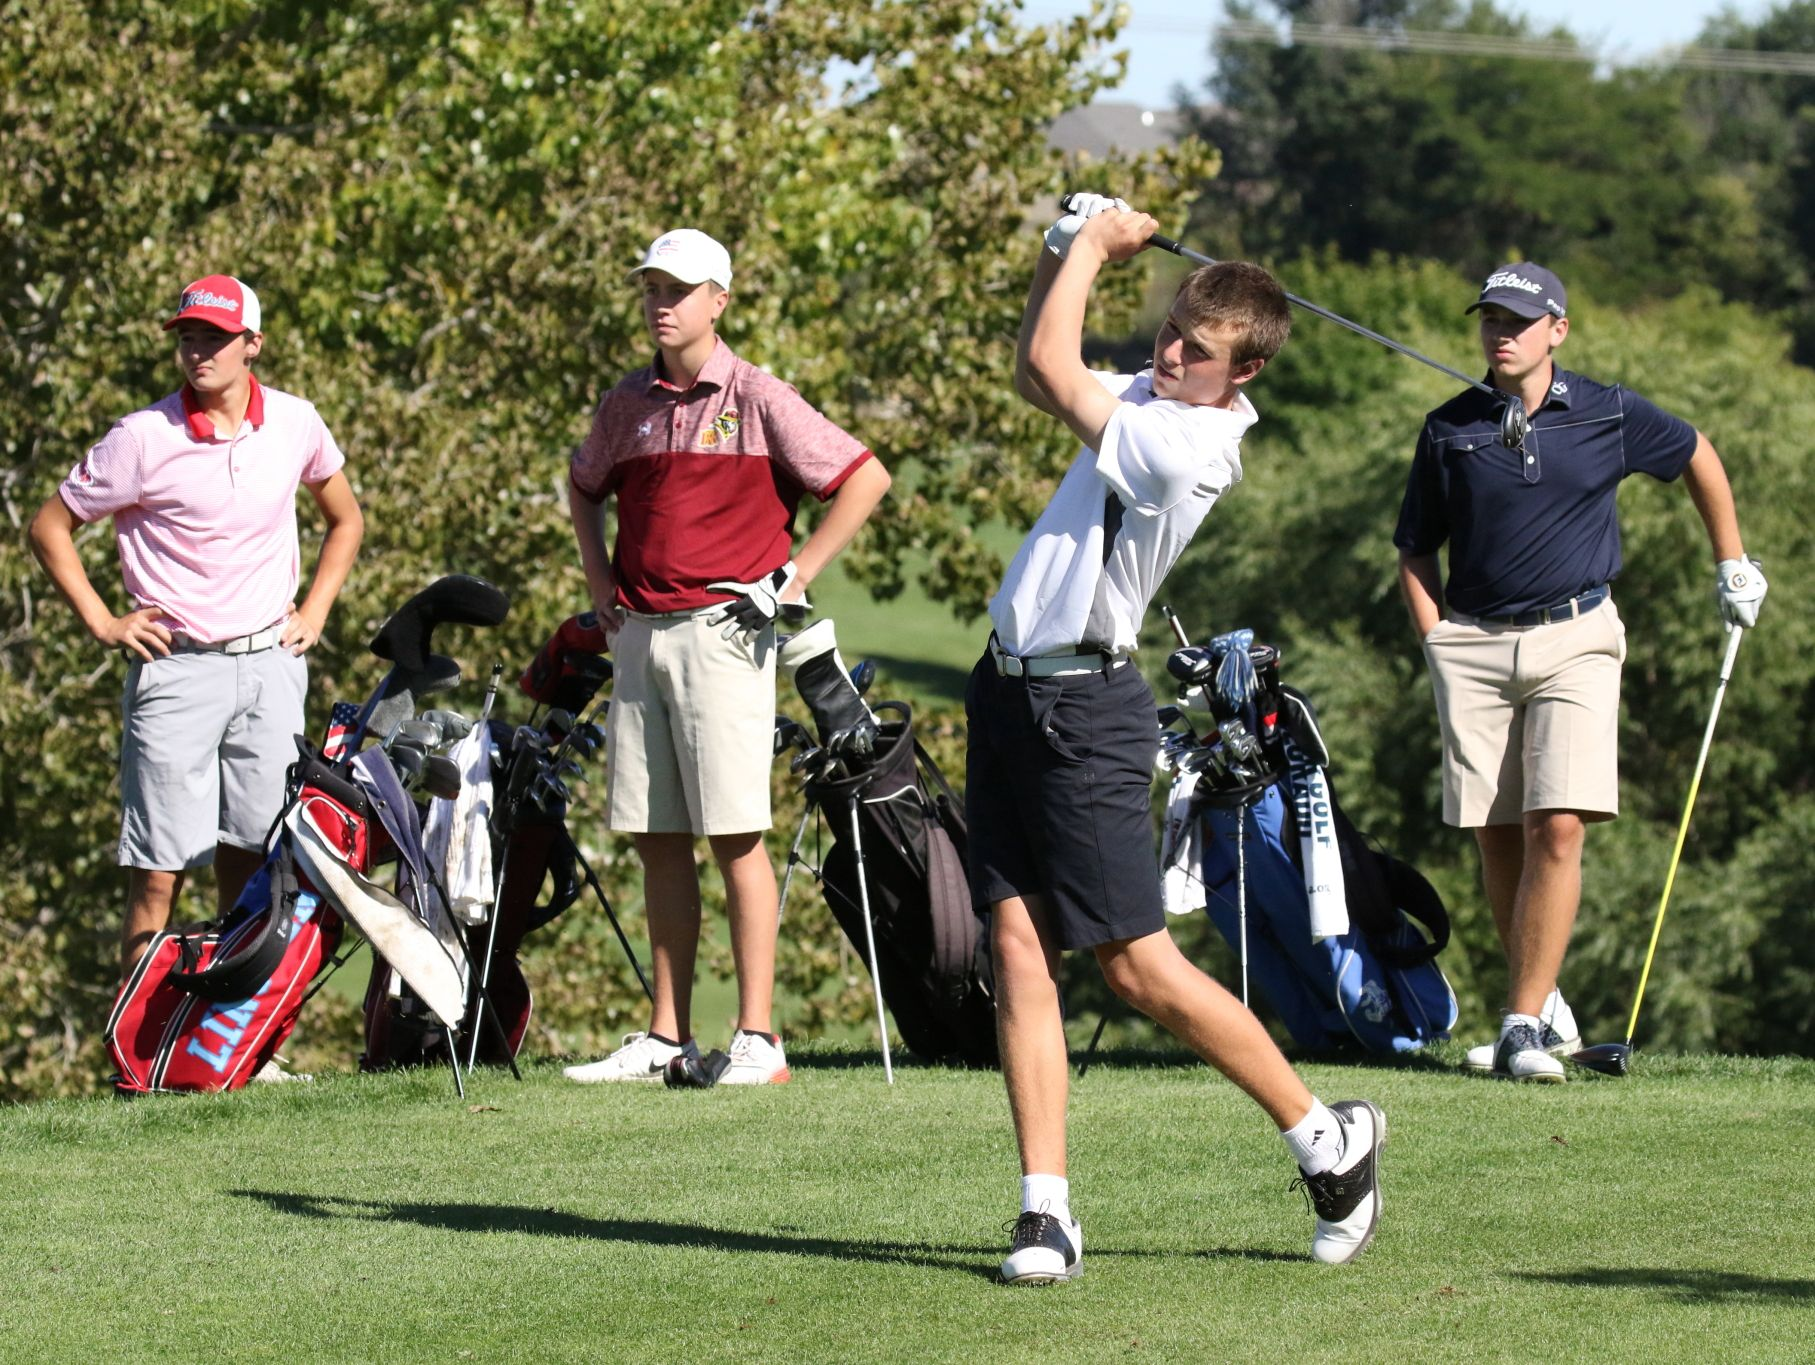 Will Grevlos of Washington tees off on the 5th hole as George Mickelson, Jack Lundin and Bryce Hammer (L-R) look on during the final round of Boys City at Willow Run.